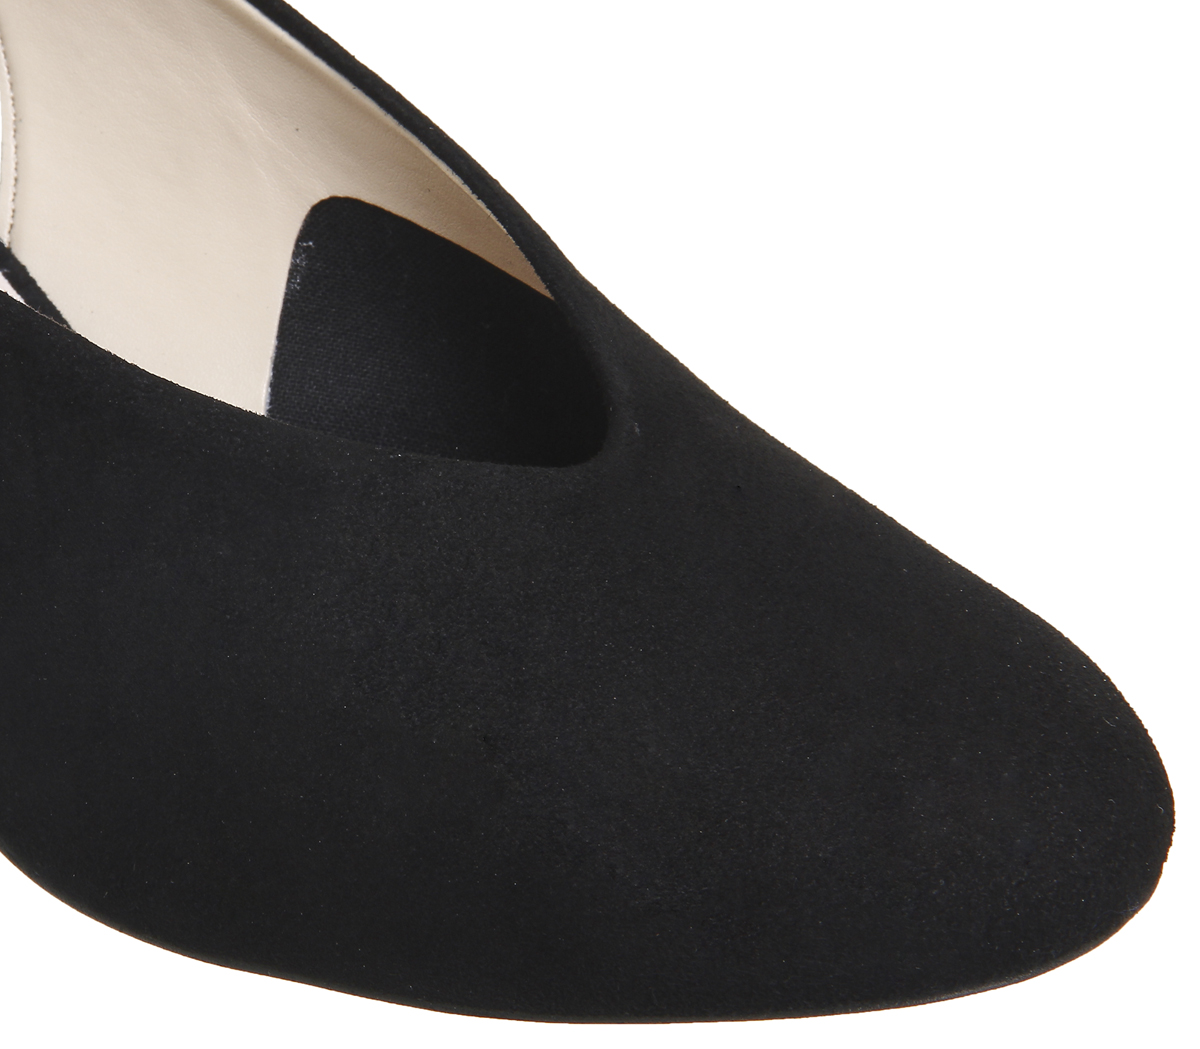 Womens-Office-Magical-Bow-Slingback-Heels-Black-Suede-Heels thumbnail 11